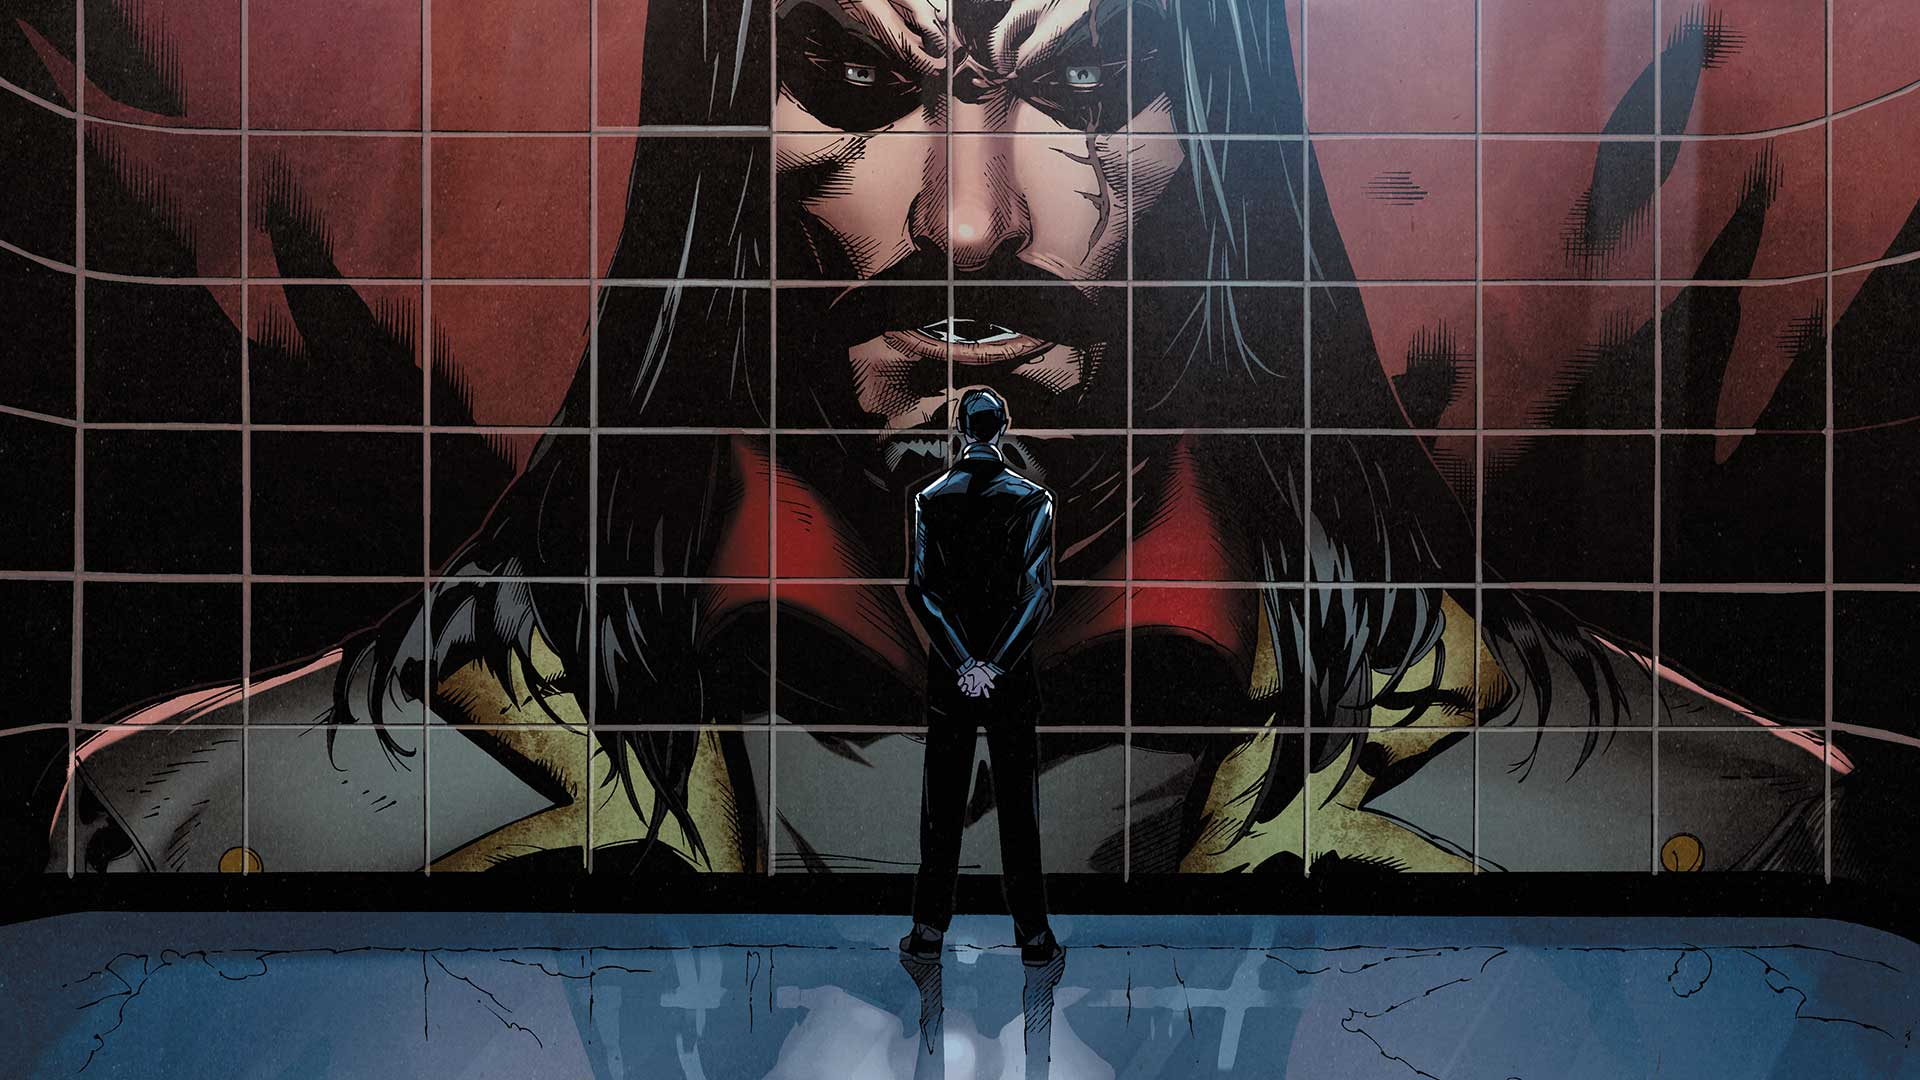 Vandal Savage briefing a member of The Light. (Source: DC Comics)